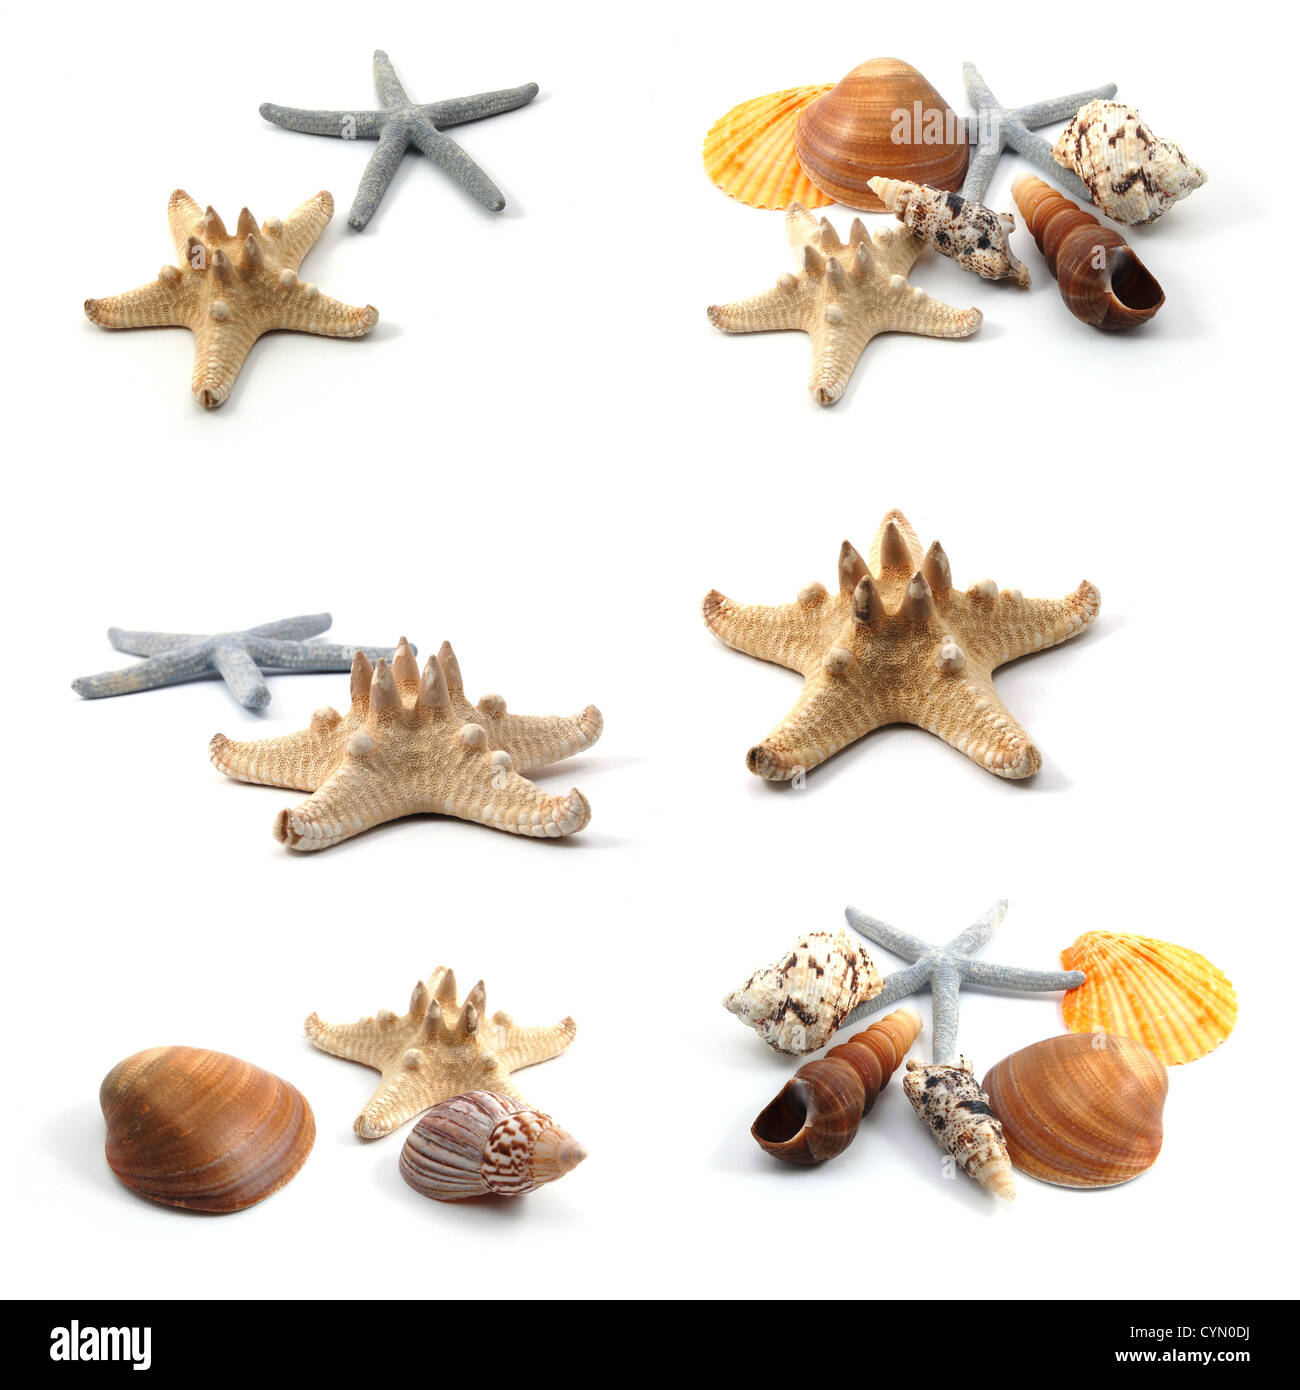 ocean creatures like seashells and starfish collection stock photo